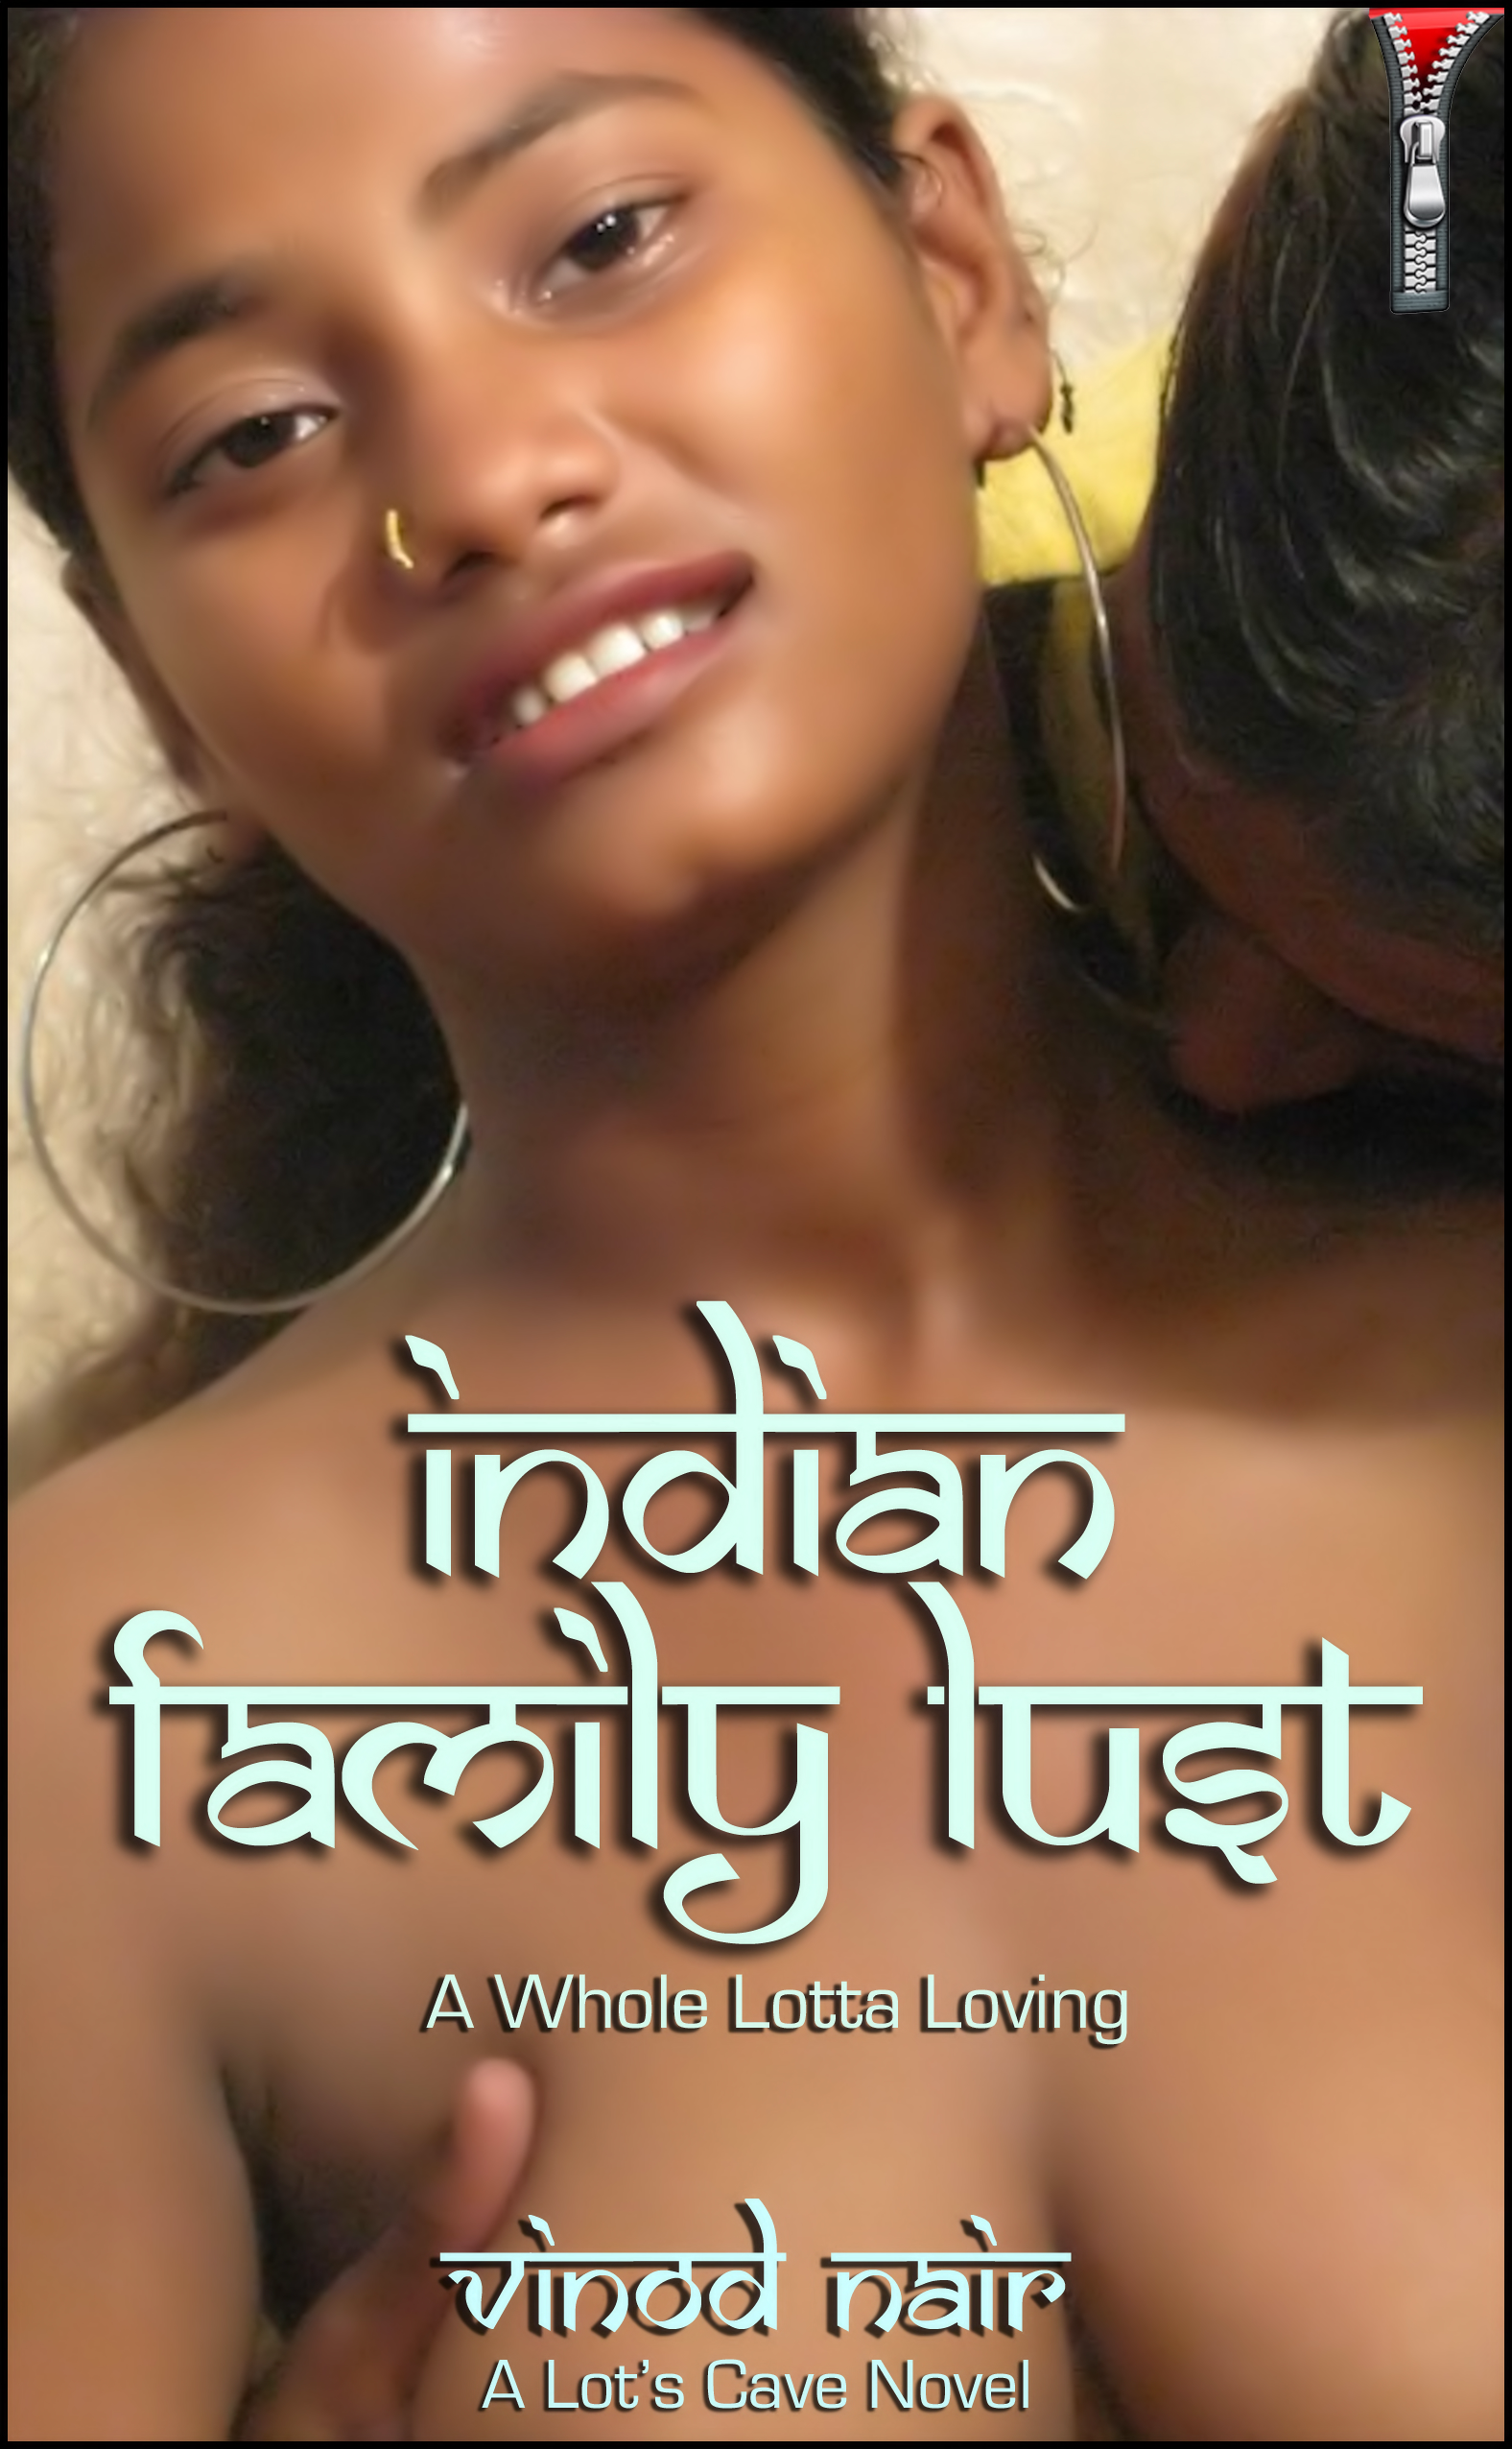 Smashwords  Indian Family Lust  A Book By Vinod Nair-1290